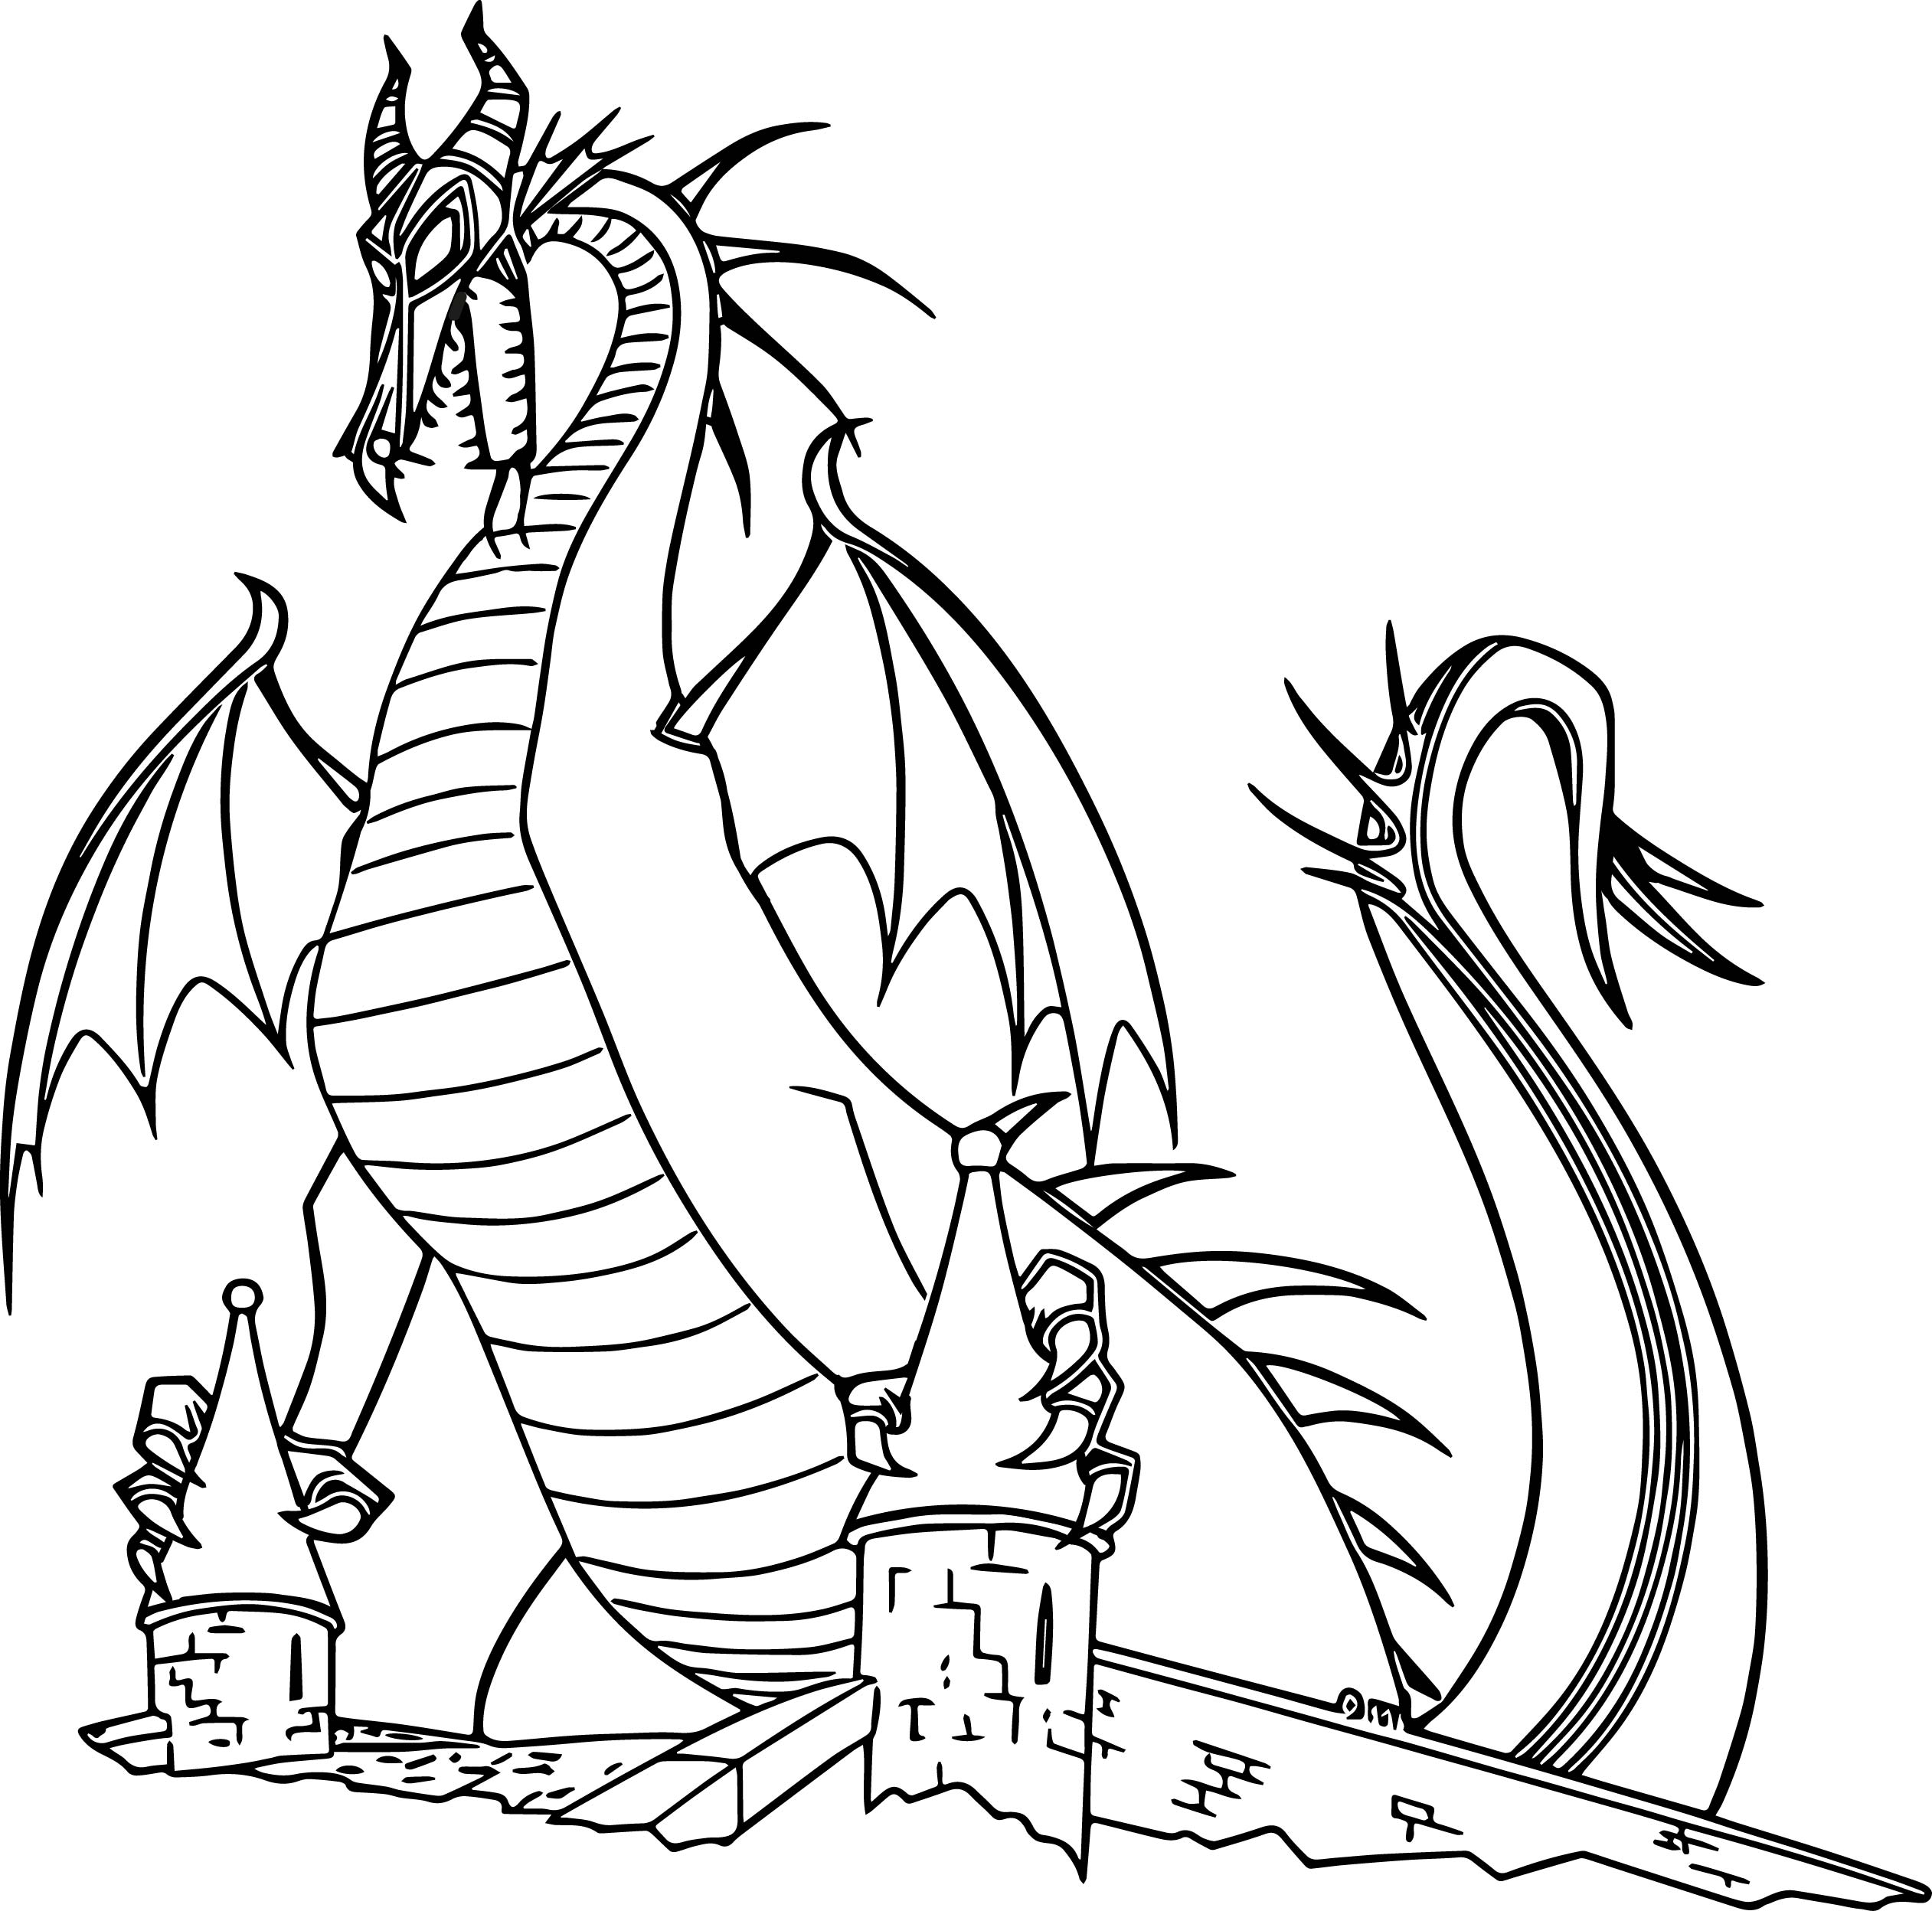 Maleficent dragon castle cartoon coloring page for Maleficent coloring pages